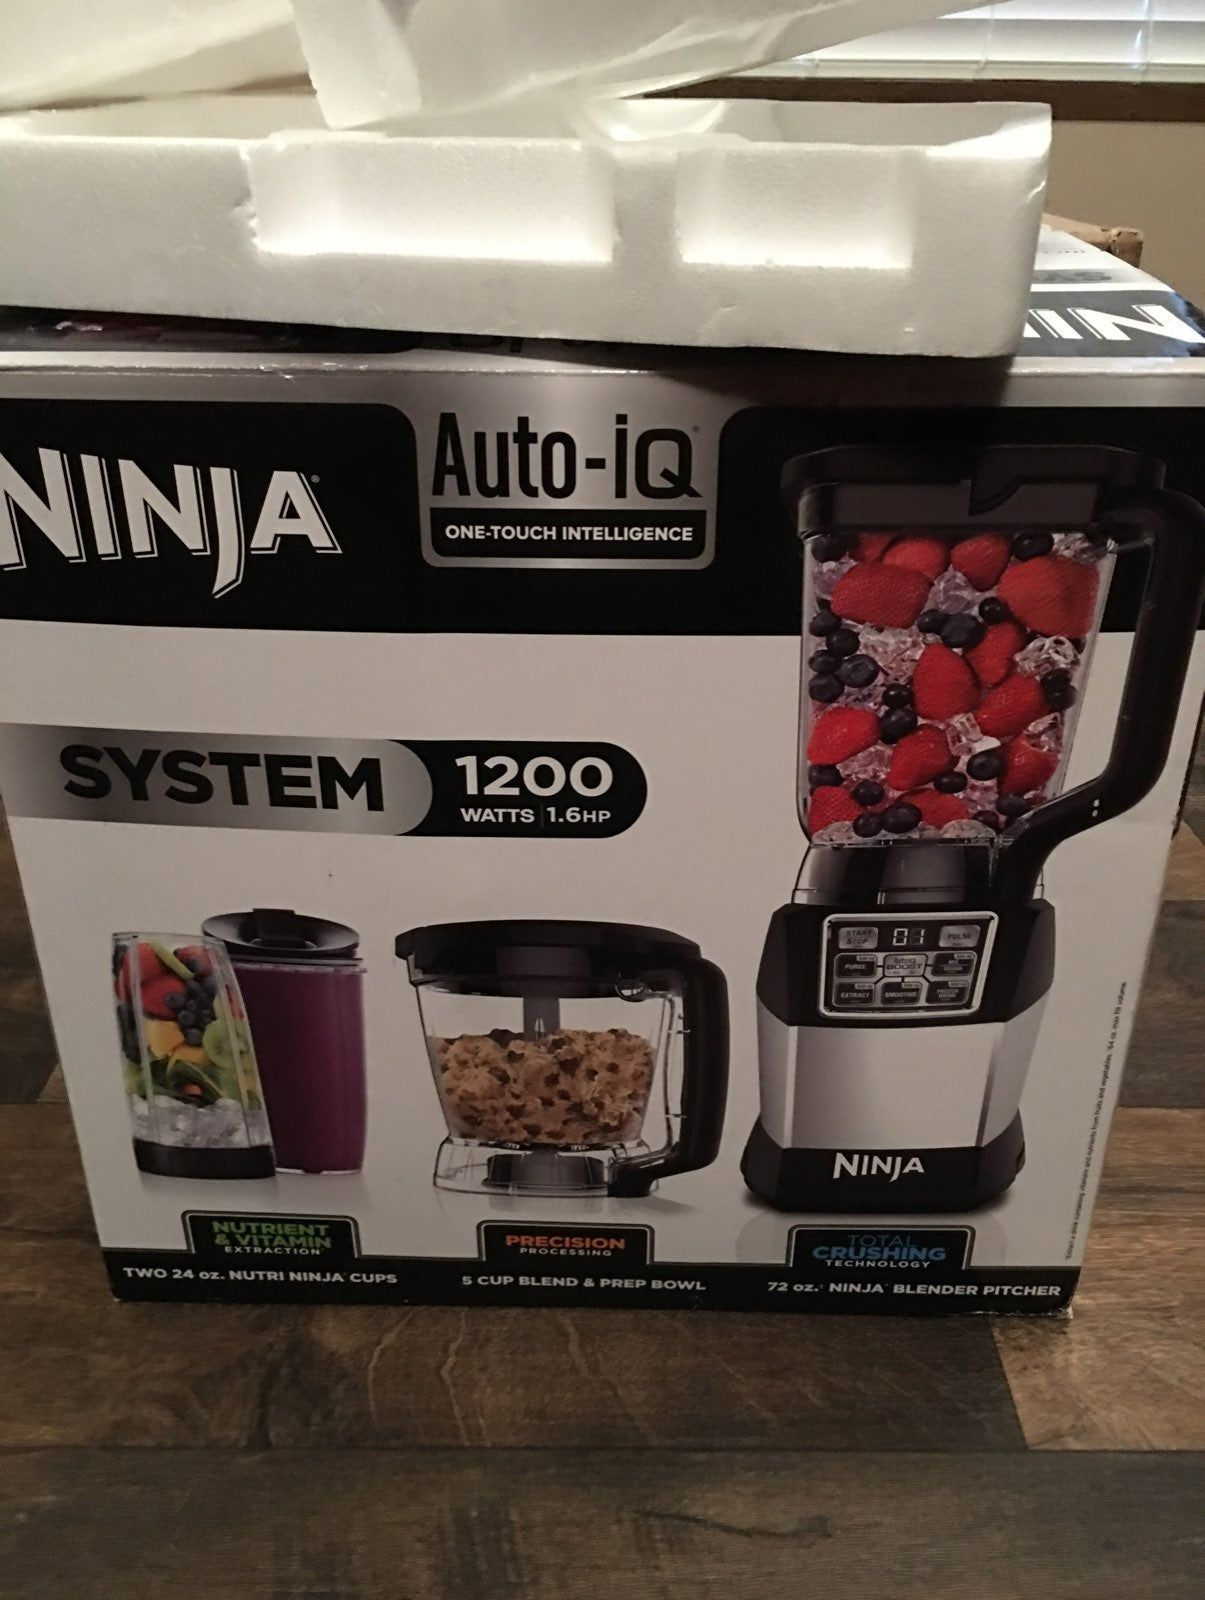 Open but never used ninja auto iq includes cups